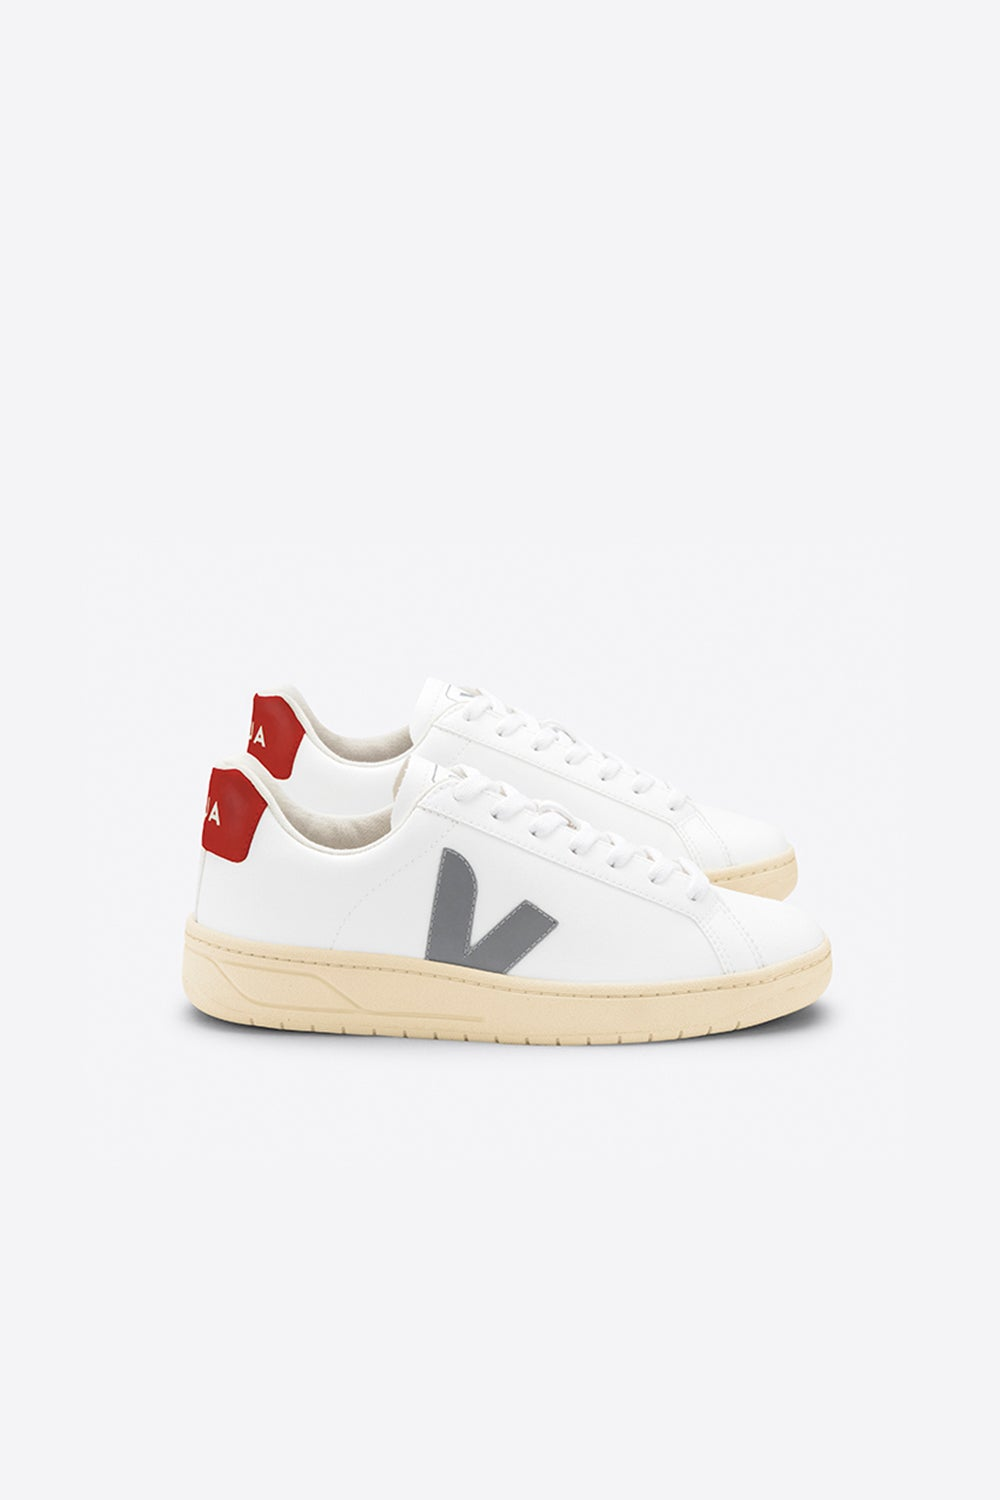 Veja Urca White/Oxford Grey/Rouille